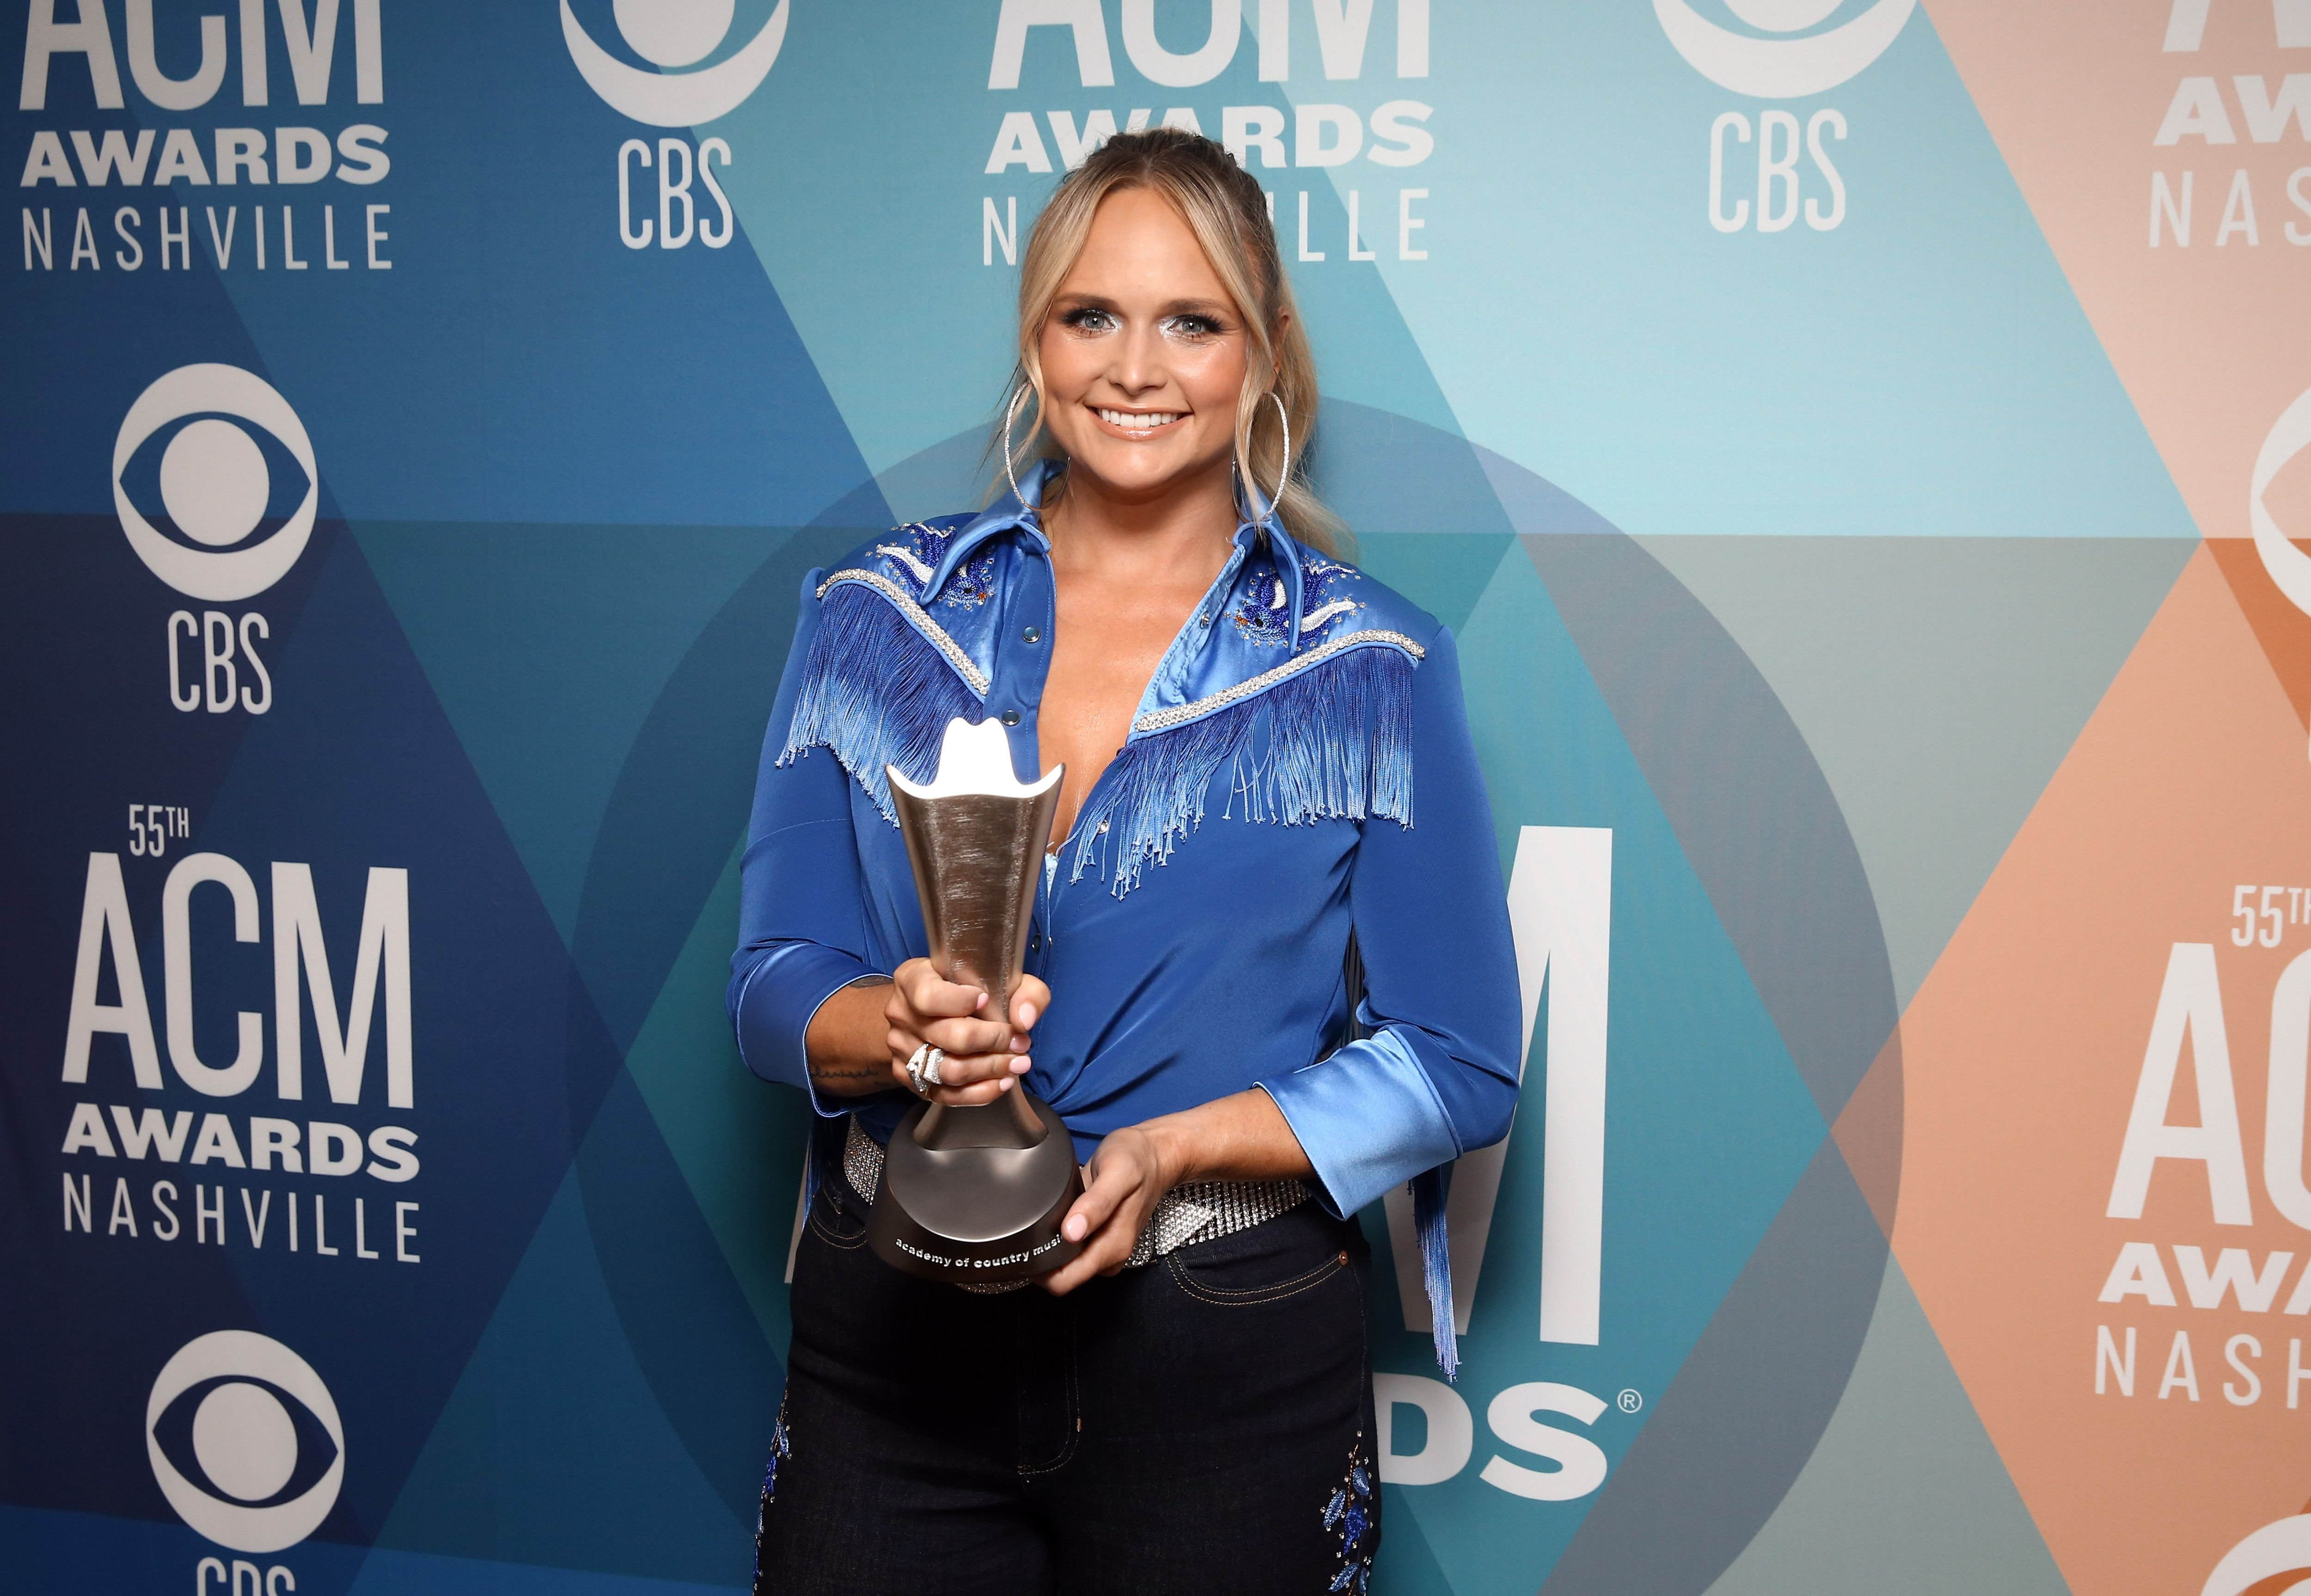 Miranda Lambert at the 55th Academy of Country Music Awards at the Bluebird Cafe on September 16, 2020 | Photo: Getty Images